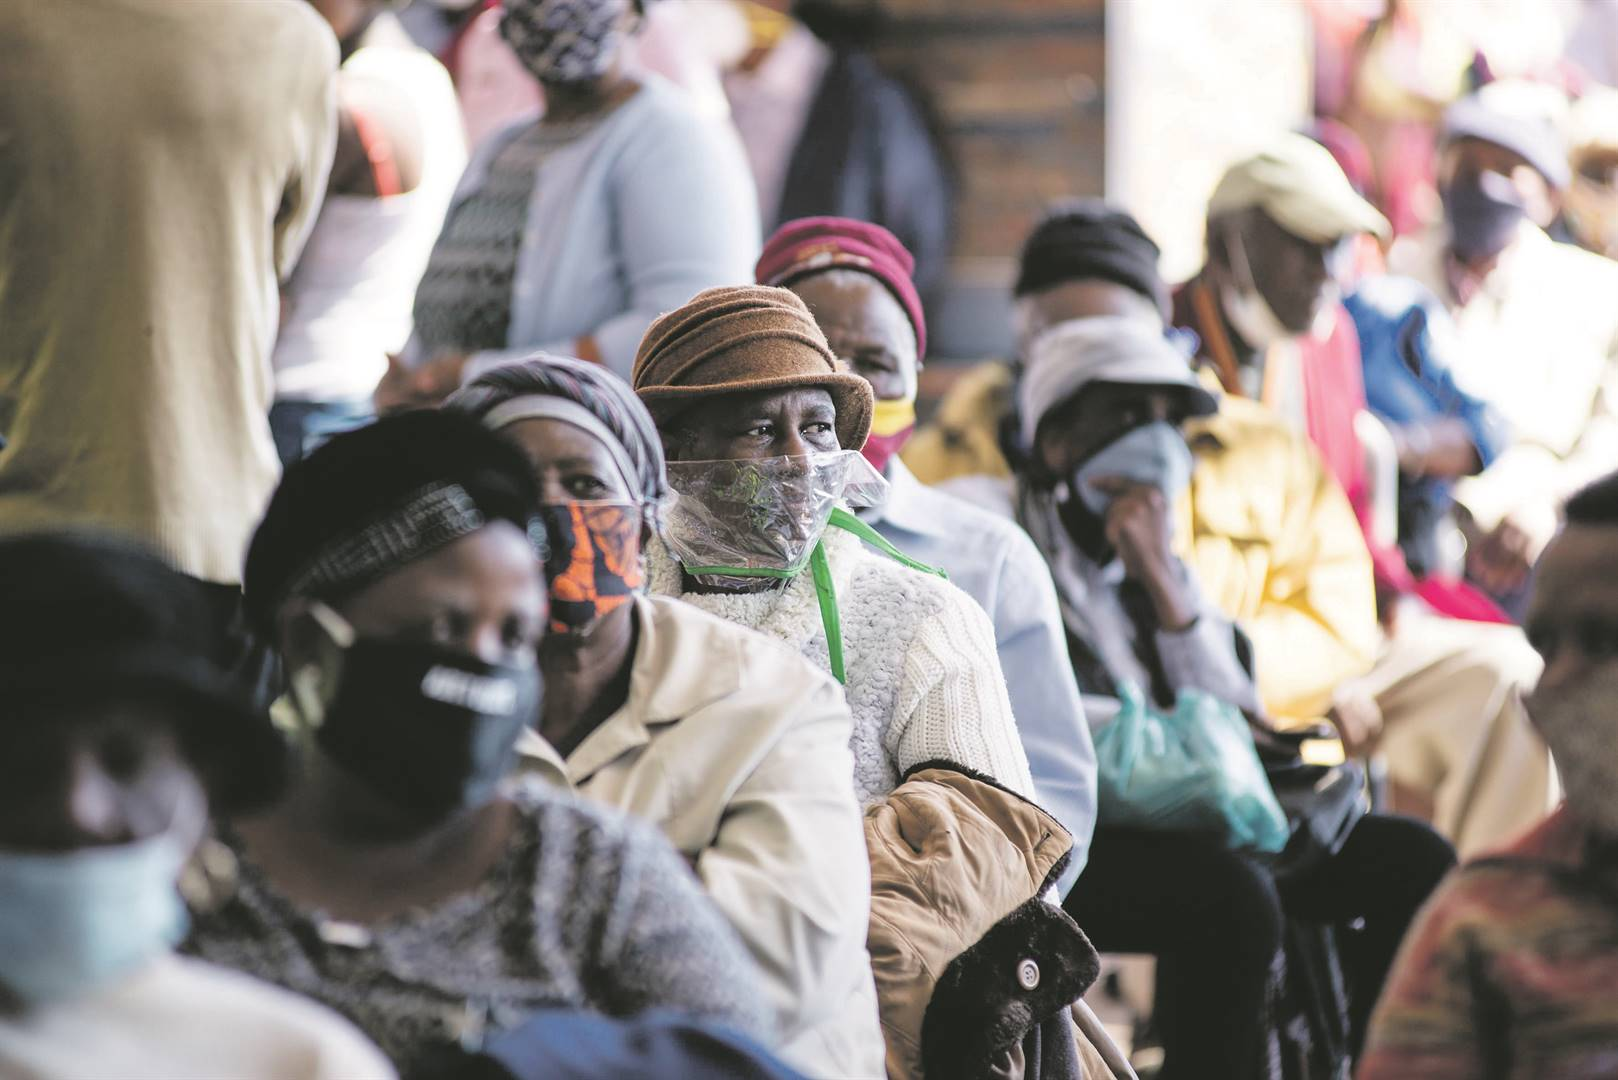 Senior citizens queue for their social grants outside Jabulani Mall in Soweto in May. Projections for 2030 suggest that more than 300 million people in sub-Saharan Africa will still be living in extreme poverty.Picture: ER Lombard / Gallo Images